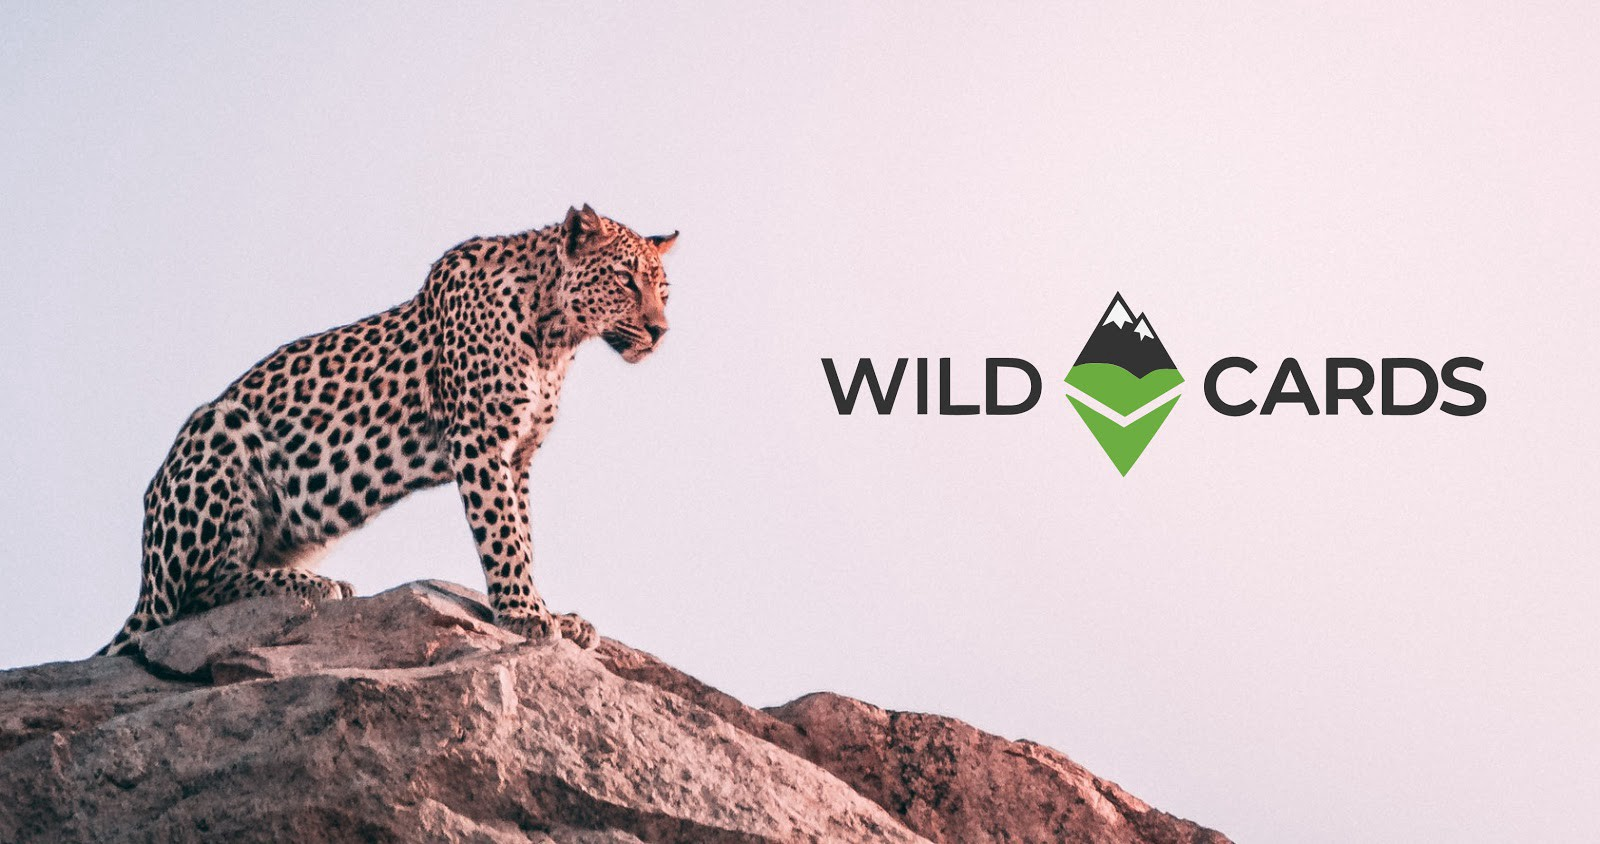 Care about a wild animal? Want to follow its journey, help protect it and stand to make a profit? Visit [Wildcards](https://wildcards.world/#).